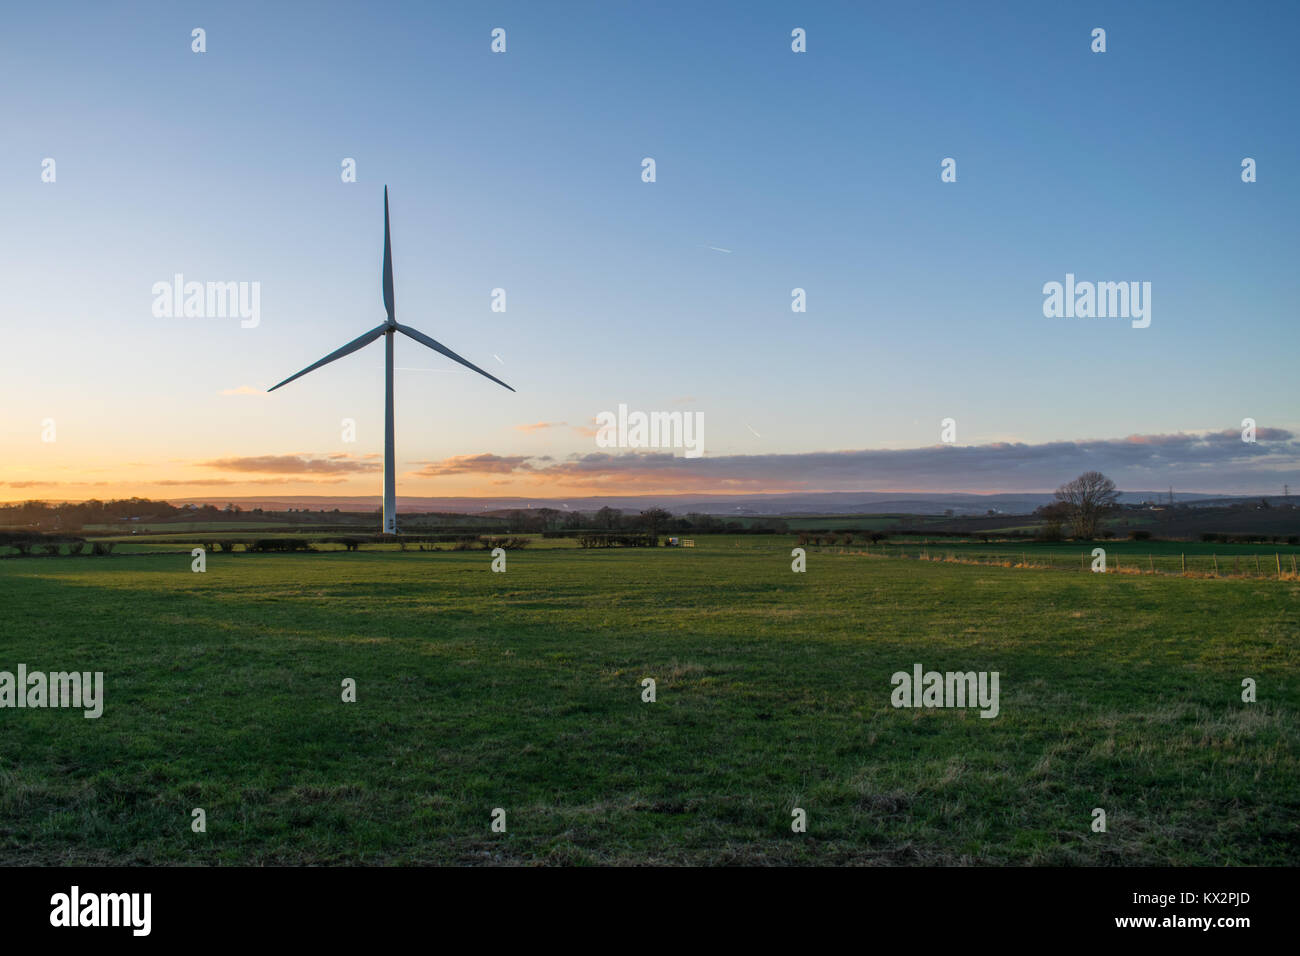 Wind Turbine in front of a Sunset - Stock Image